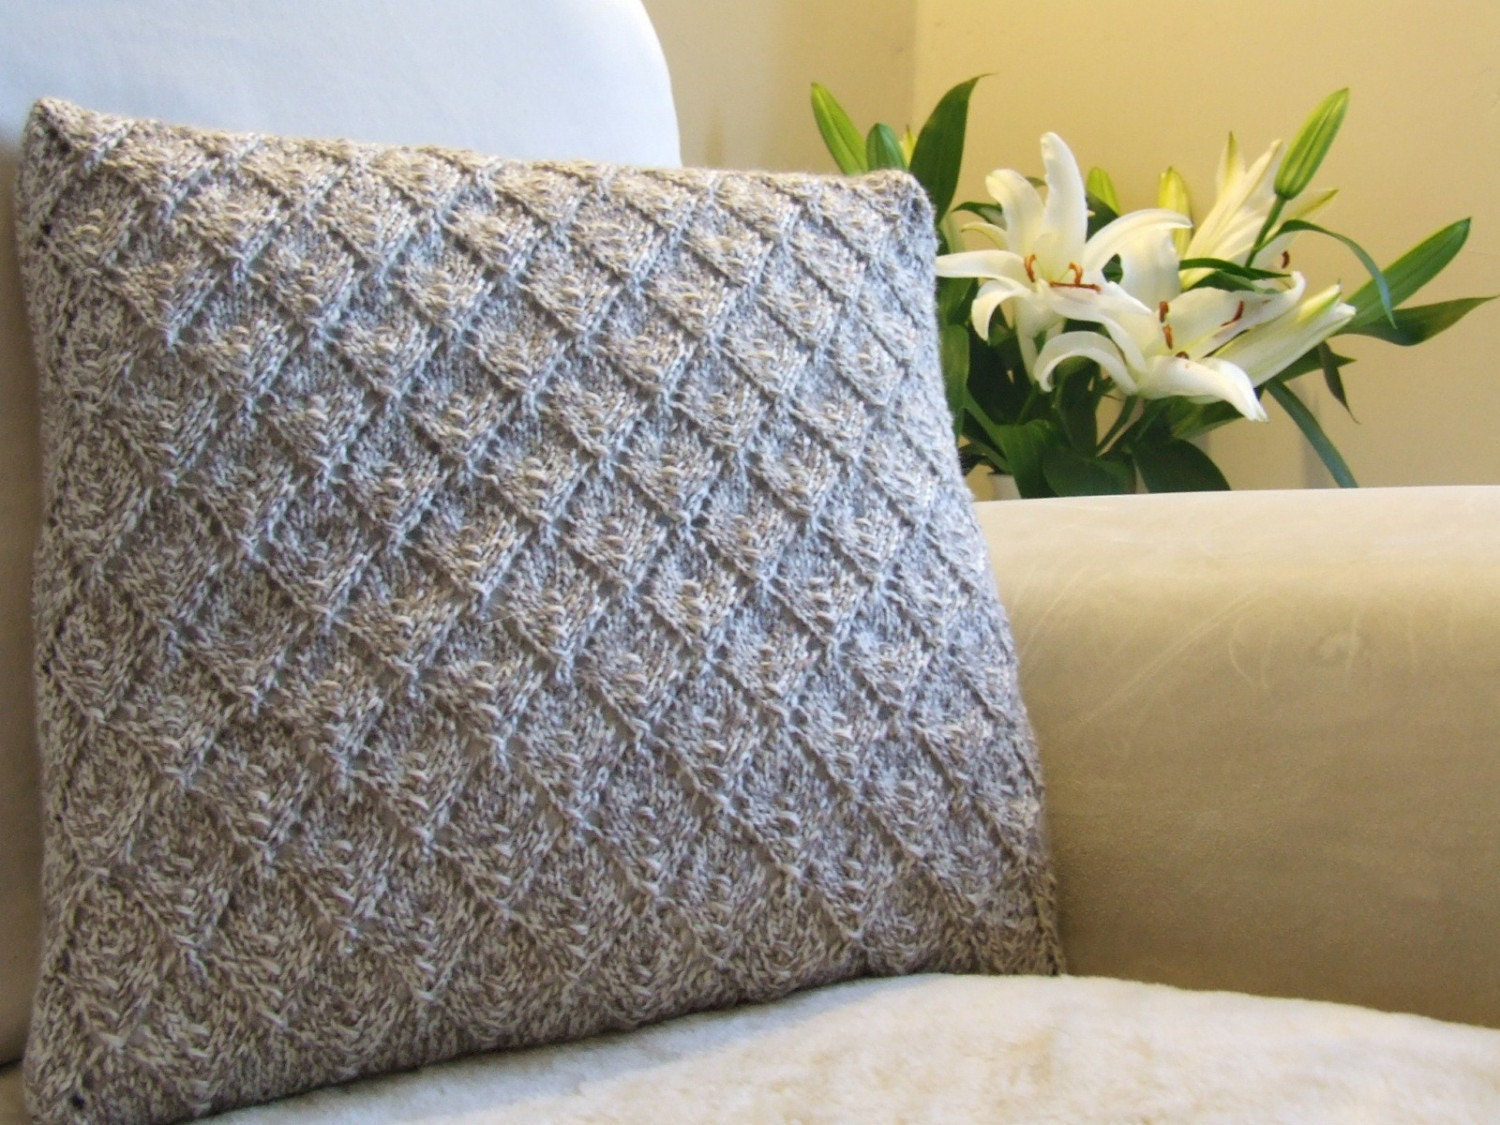 Pale beige and cream diamond pattern hand knitted pillow